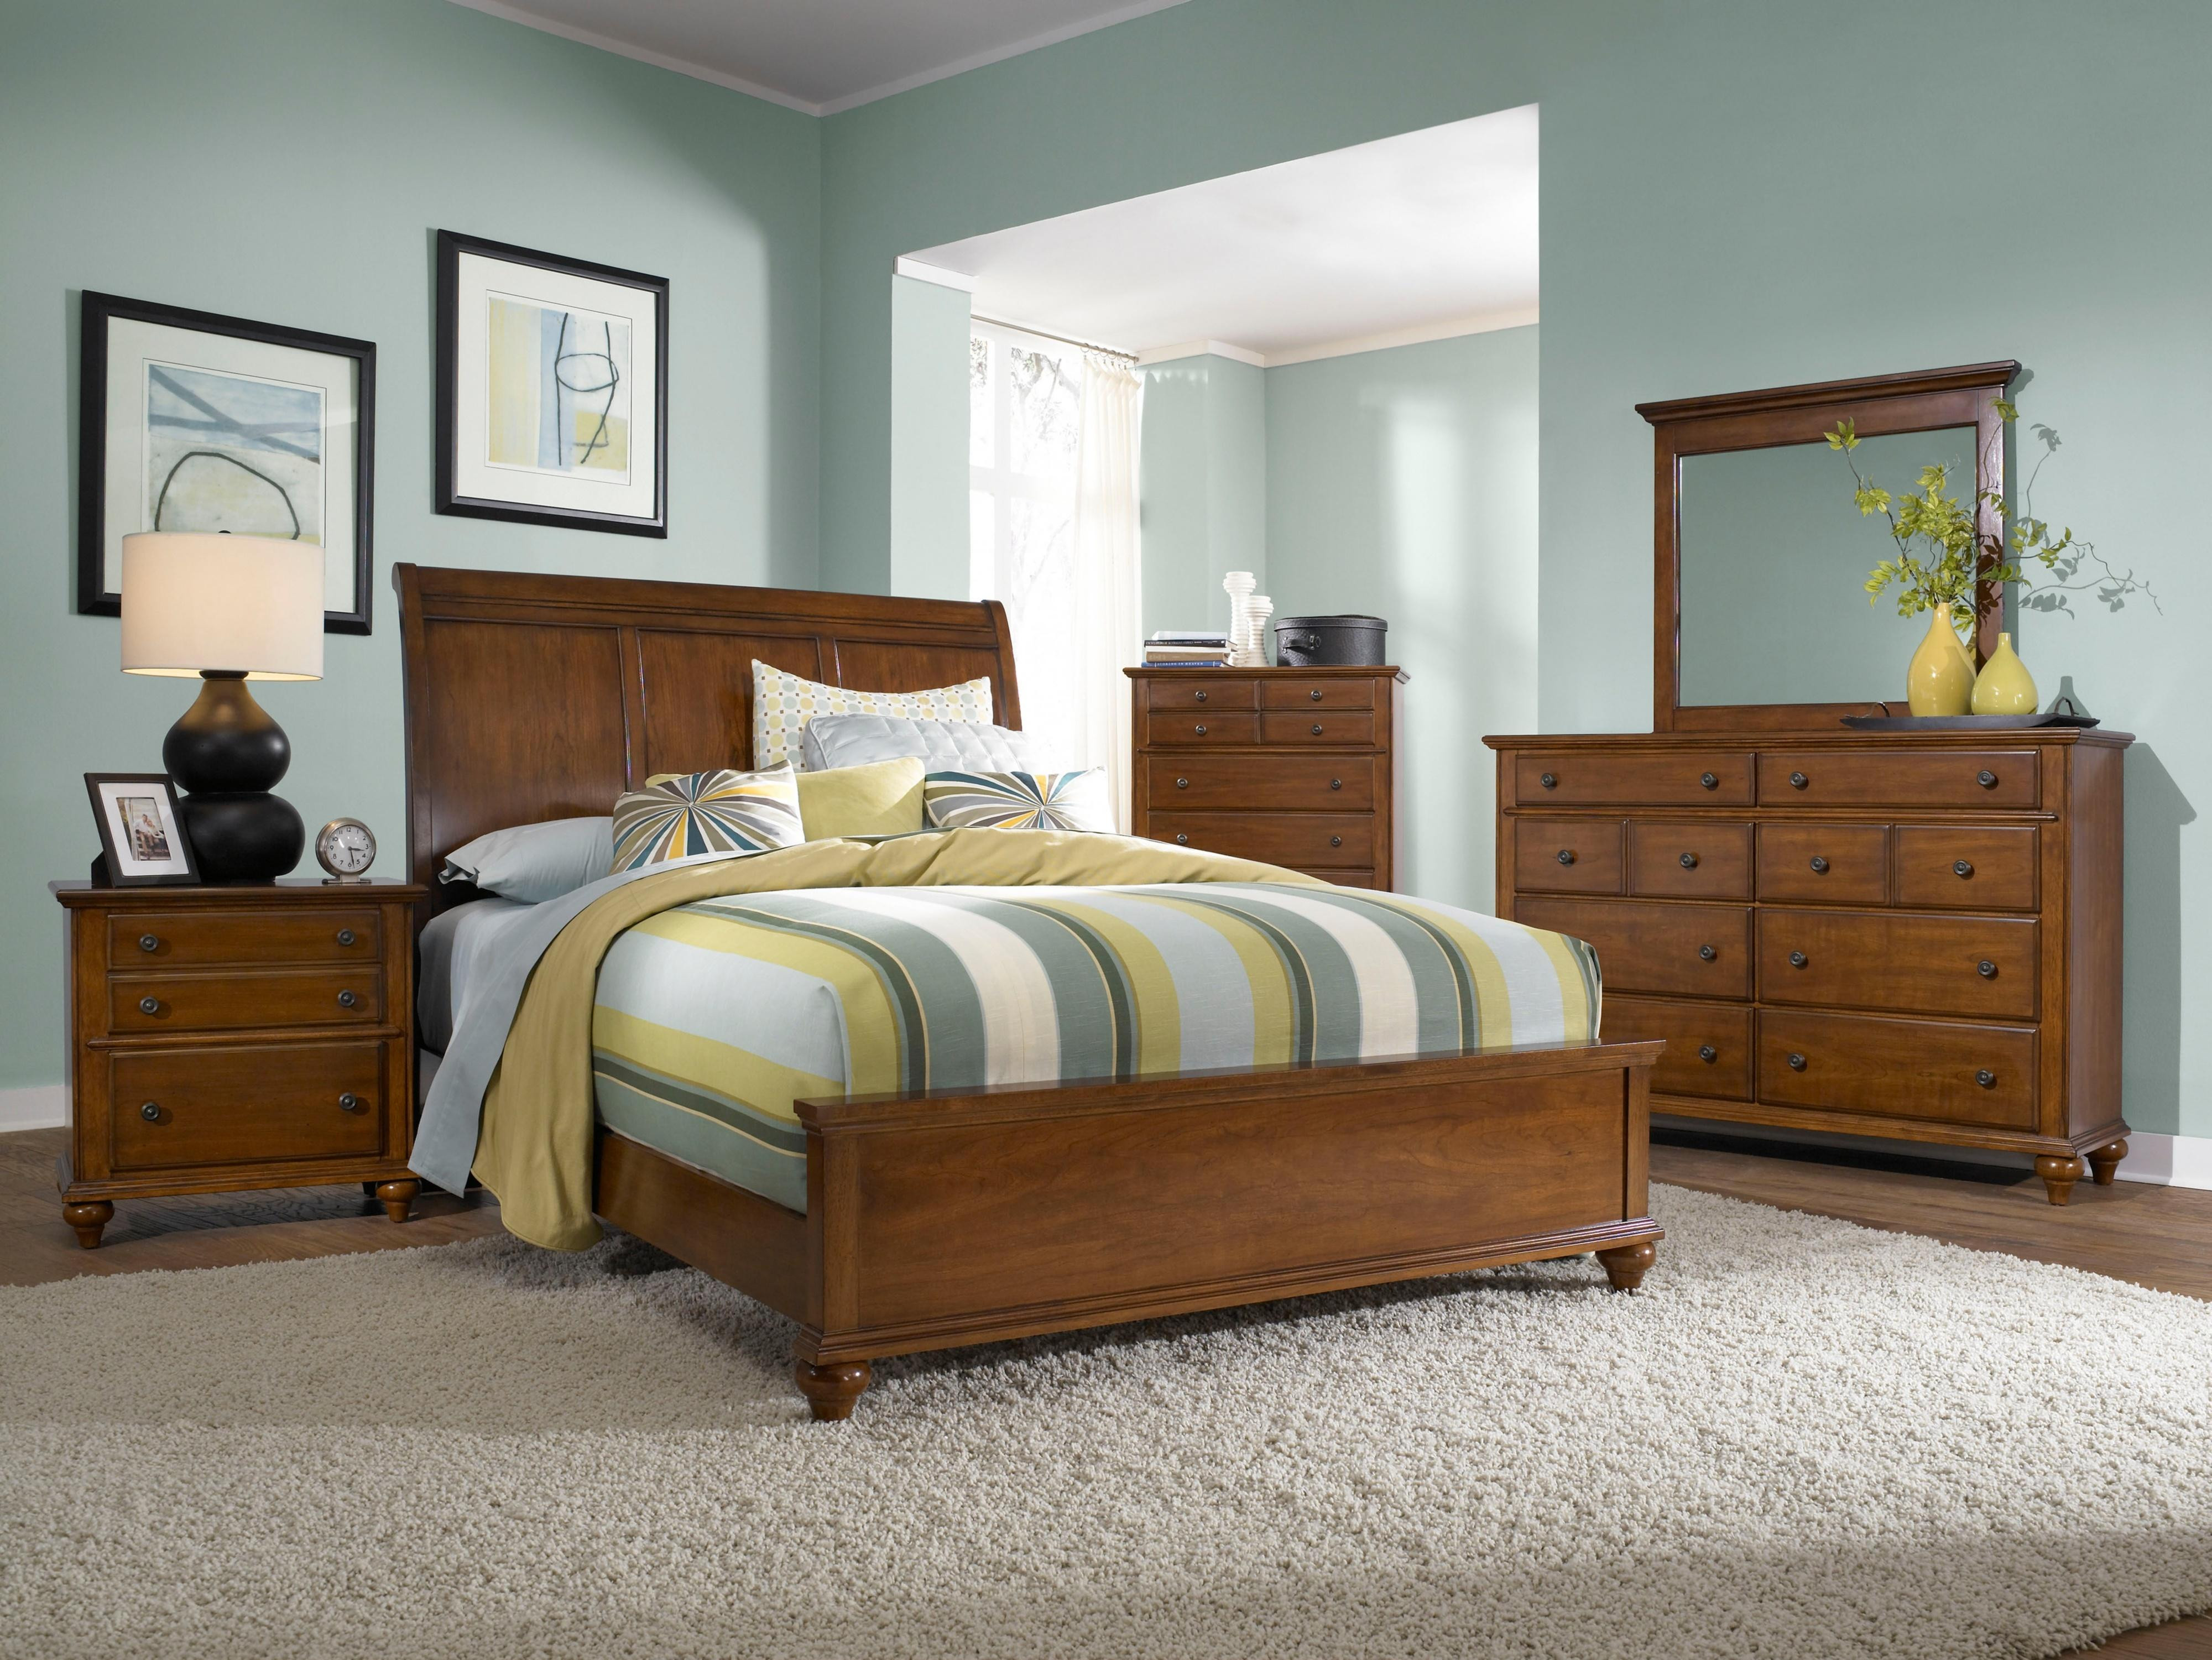 Best ideas about Broyhill Bedroom Set . Save or Pin Hayden Place 4648 by Broyhill Furniture Baer s Now.